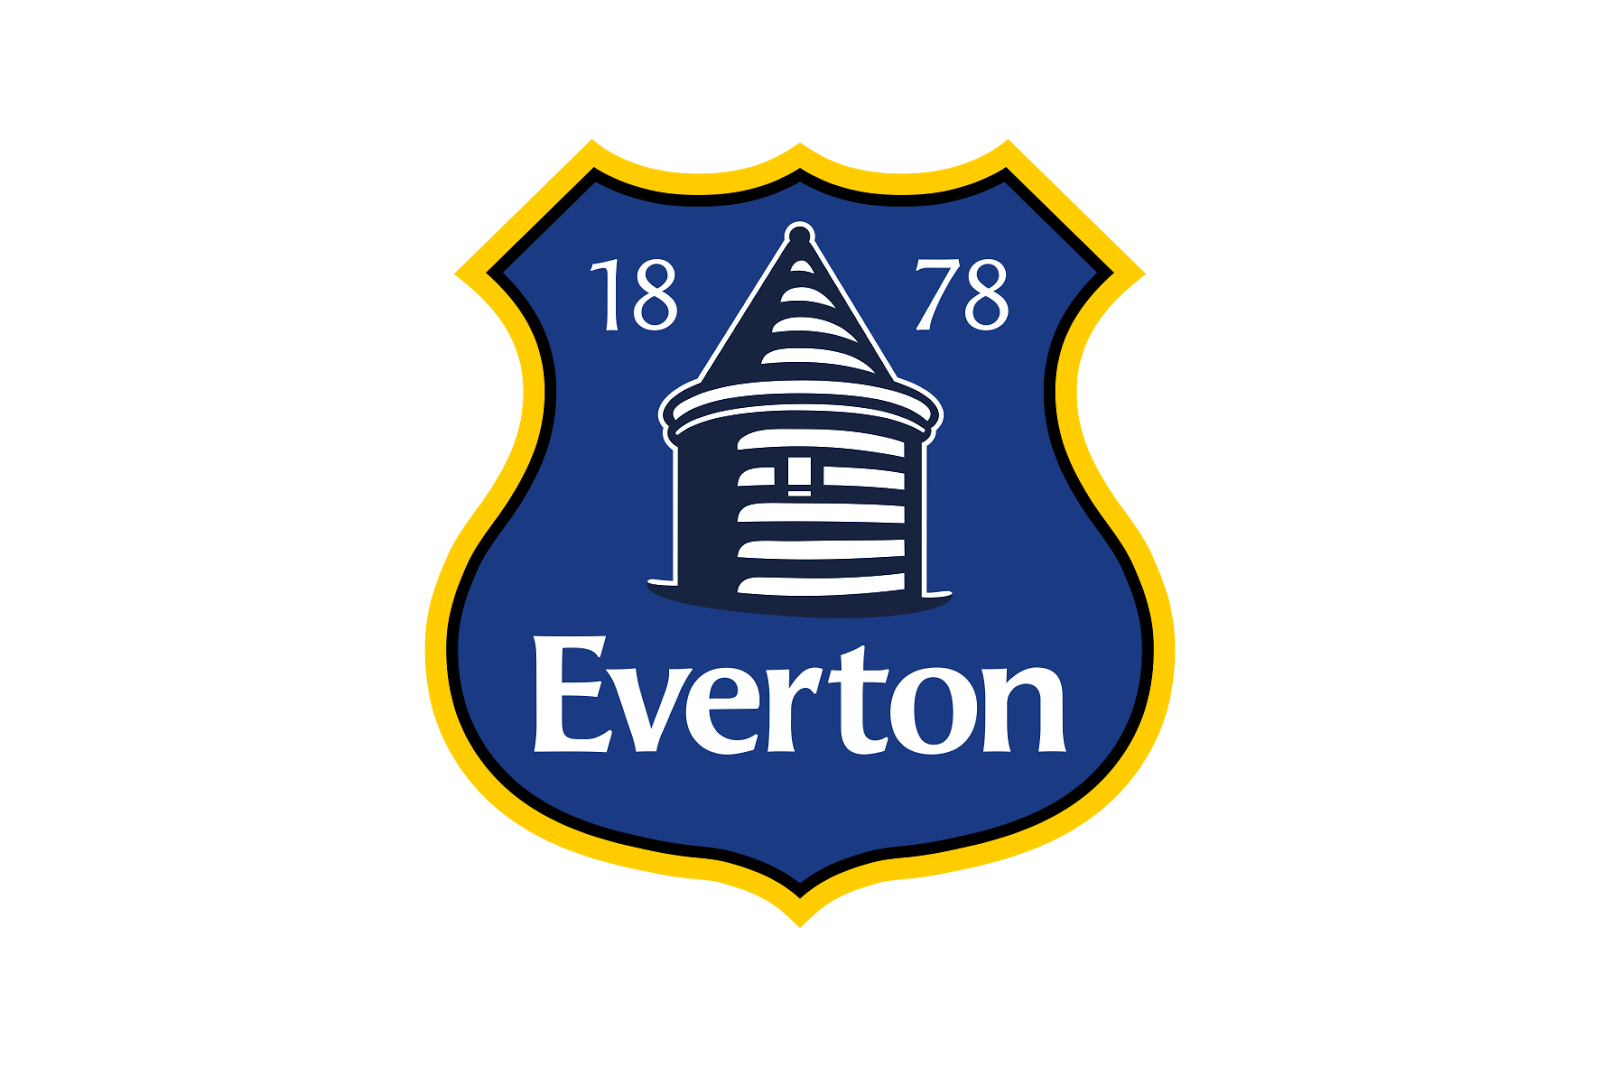 Everton Logo Wallpaper